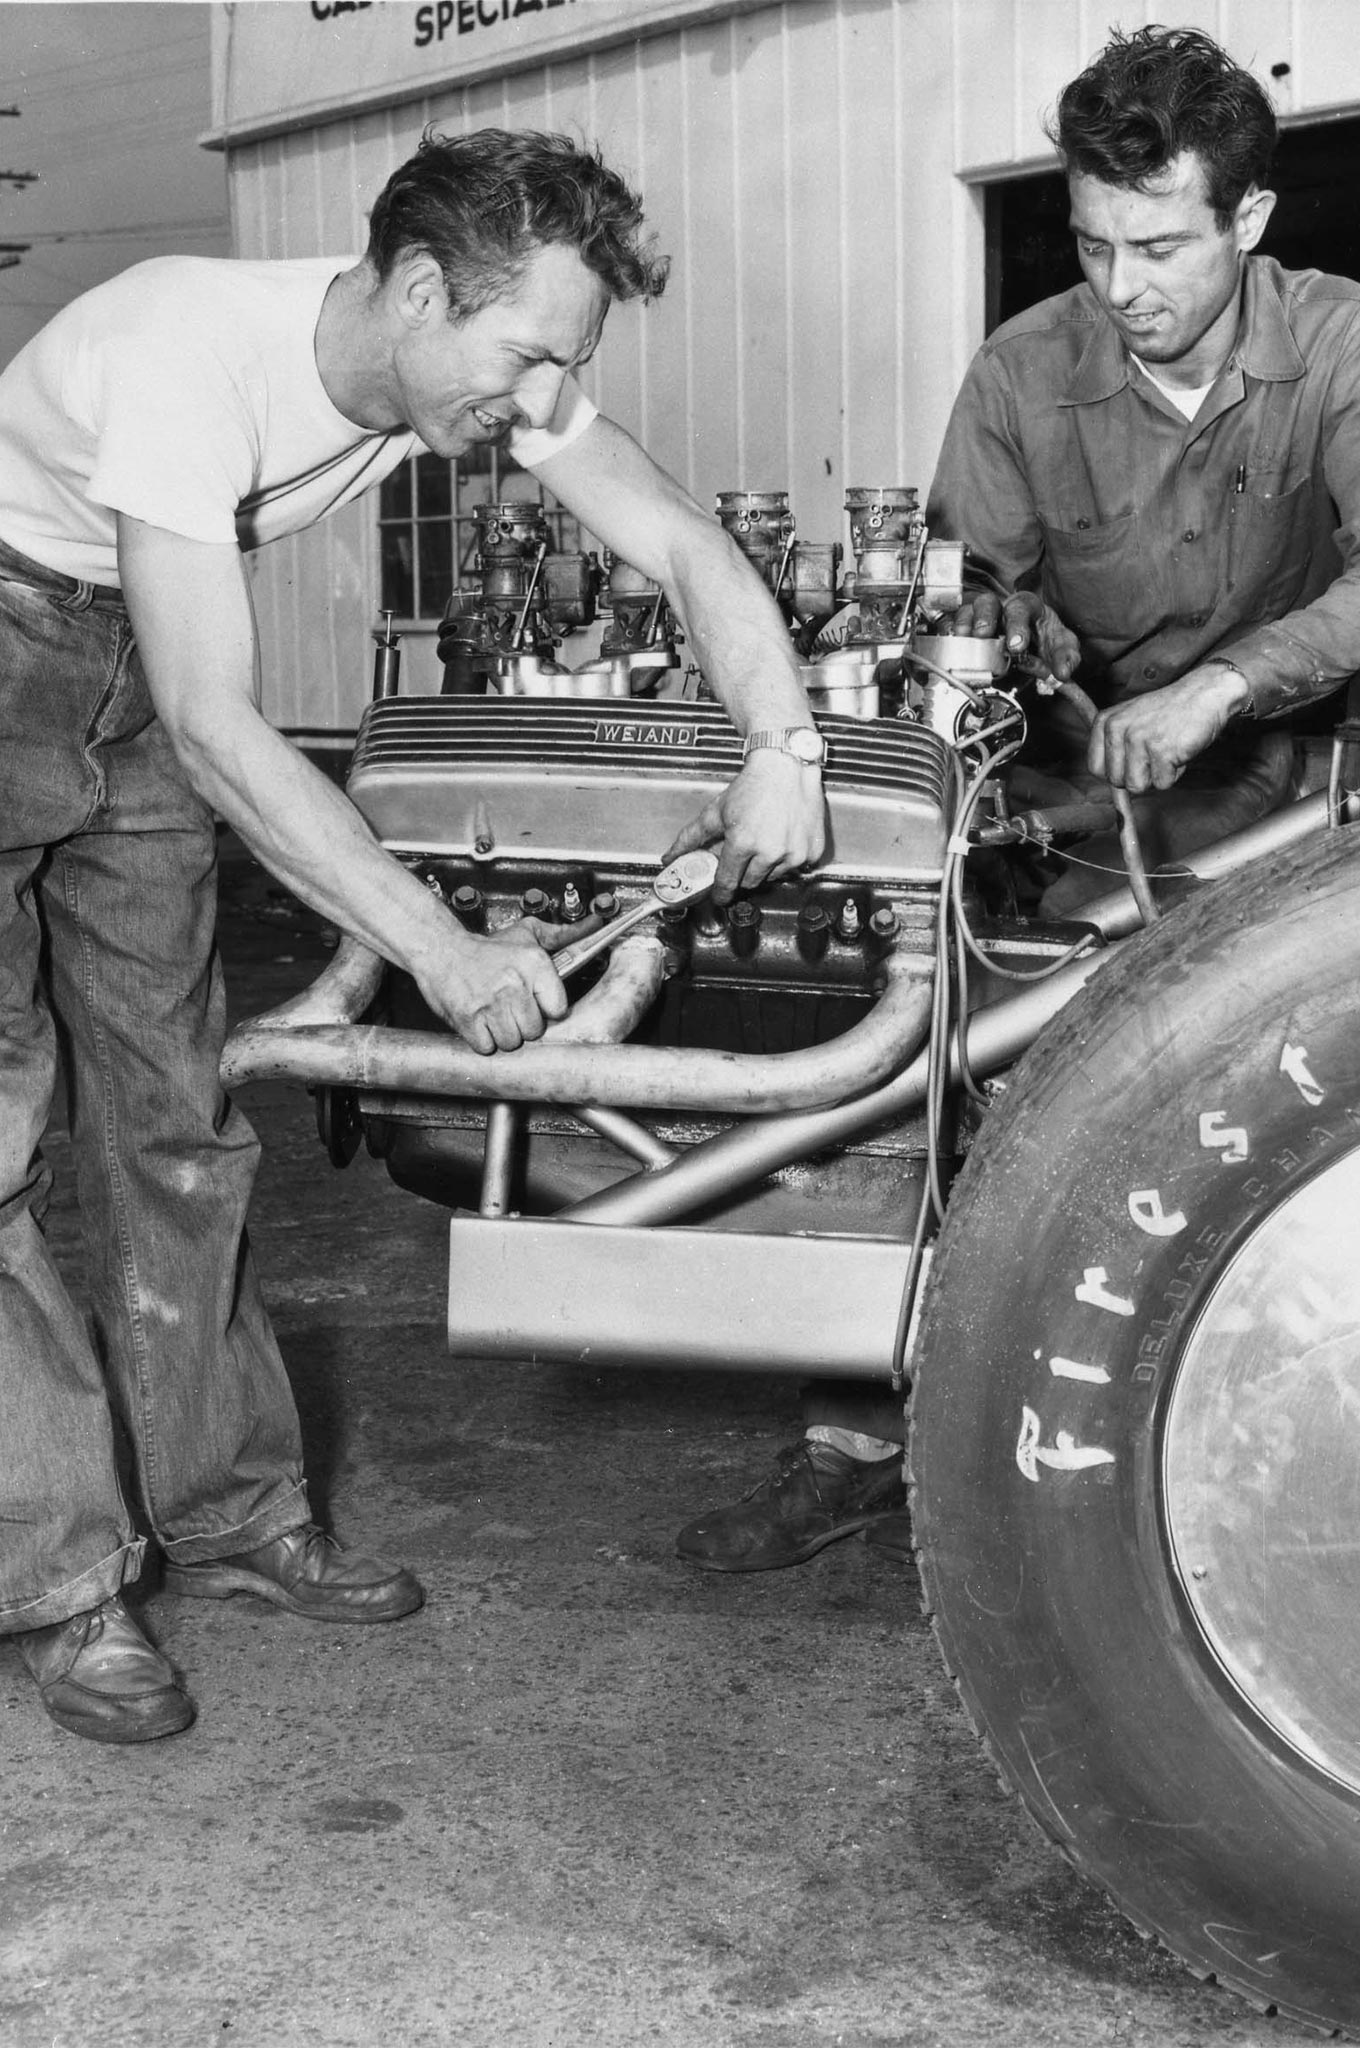 Lloyd Scott and Cadillac owner George Smith wrenching on the 391-inch stroker. This is more than likely Allison's machine shop, where they built the car, but it could be Smith's service station where they stored it.